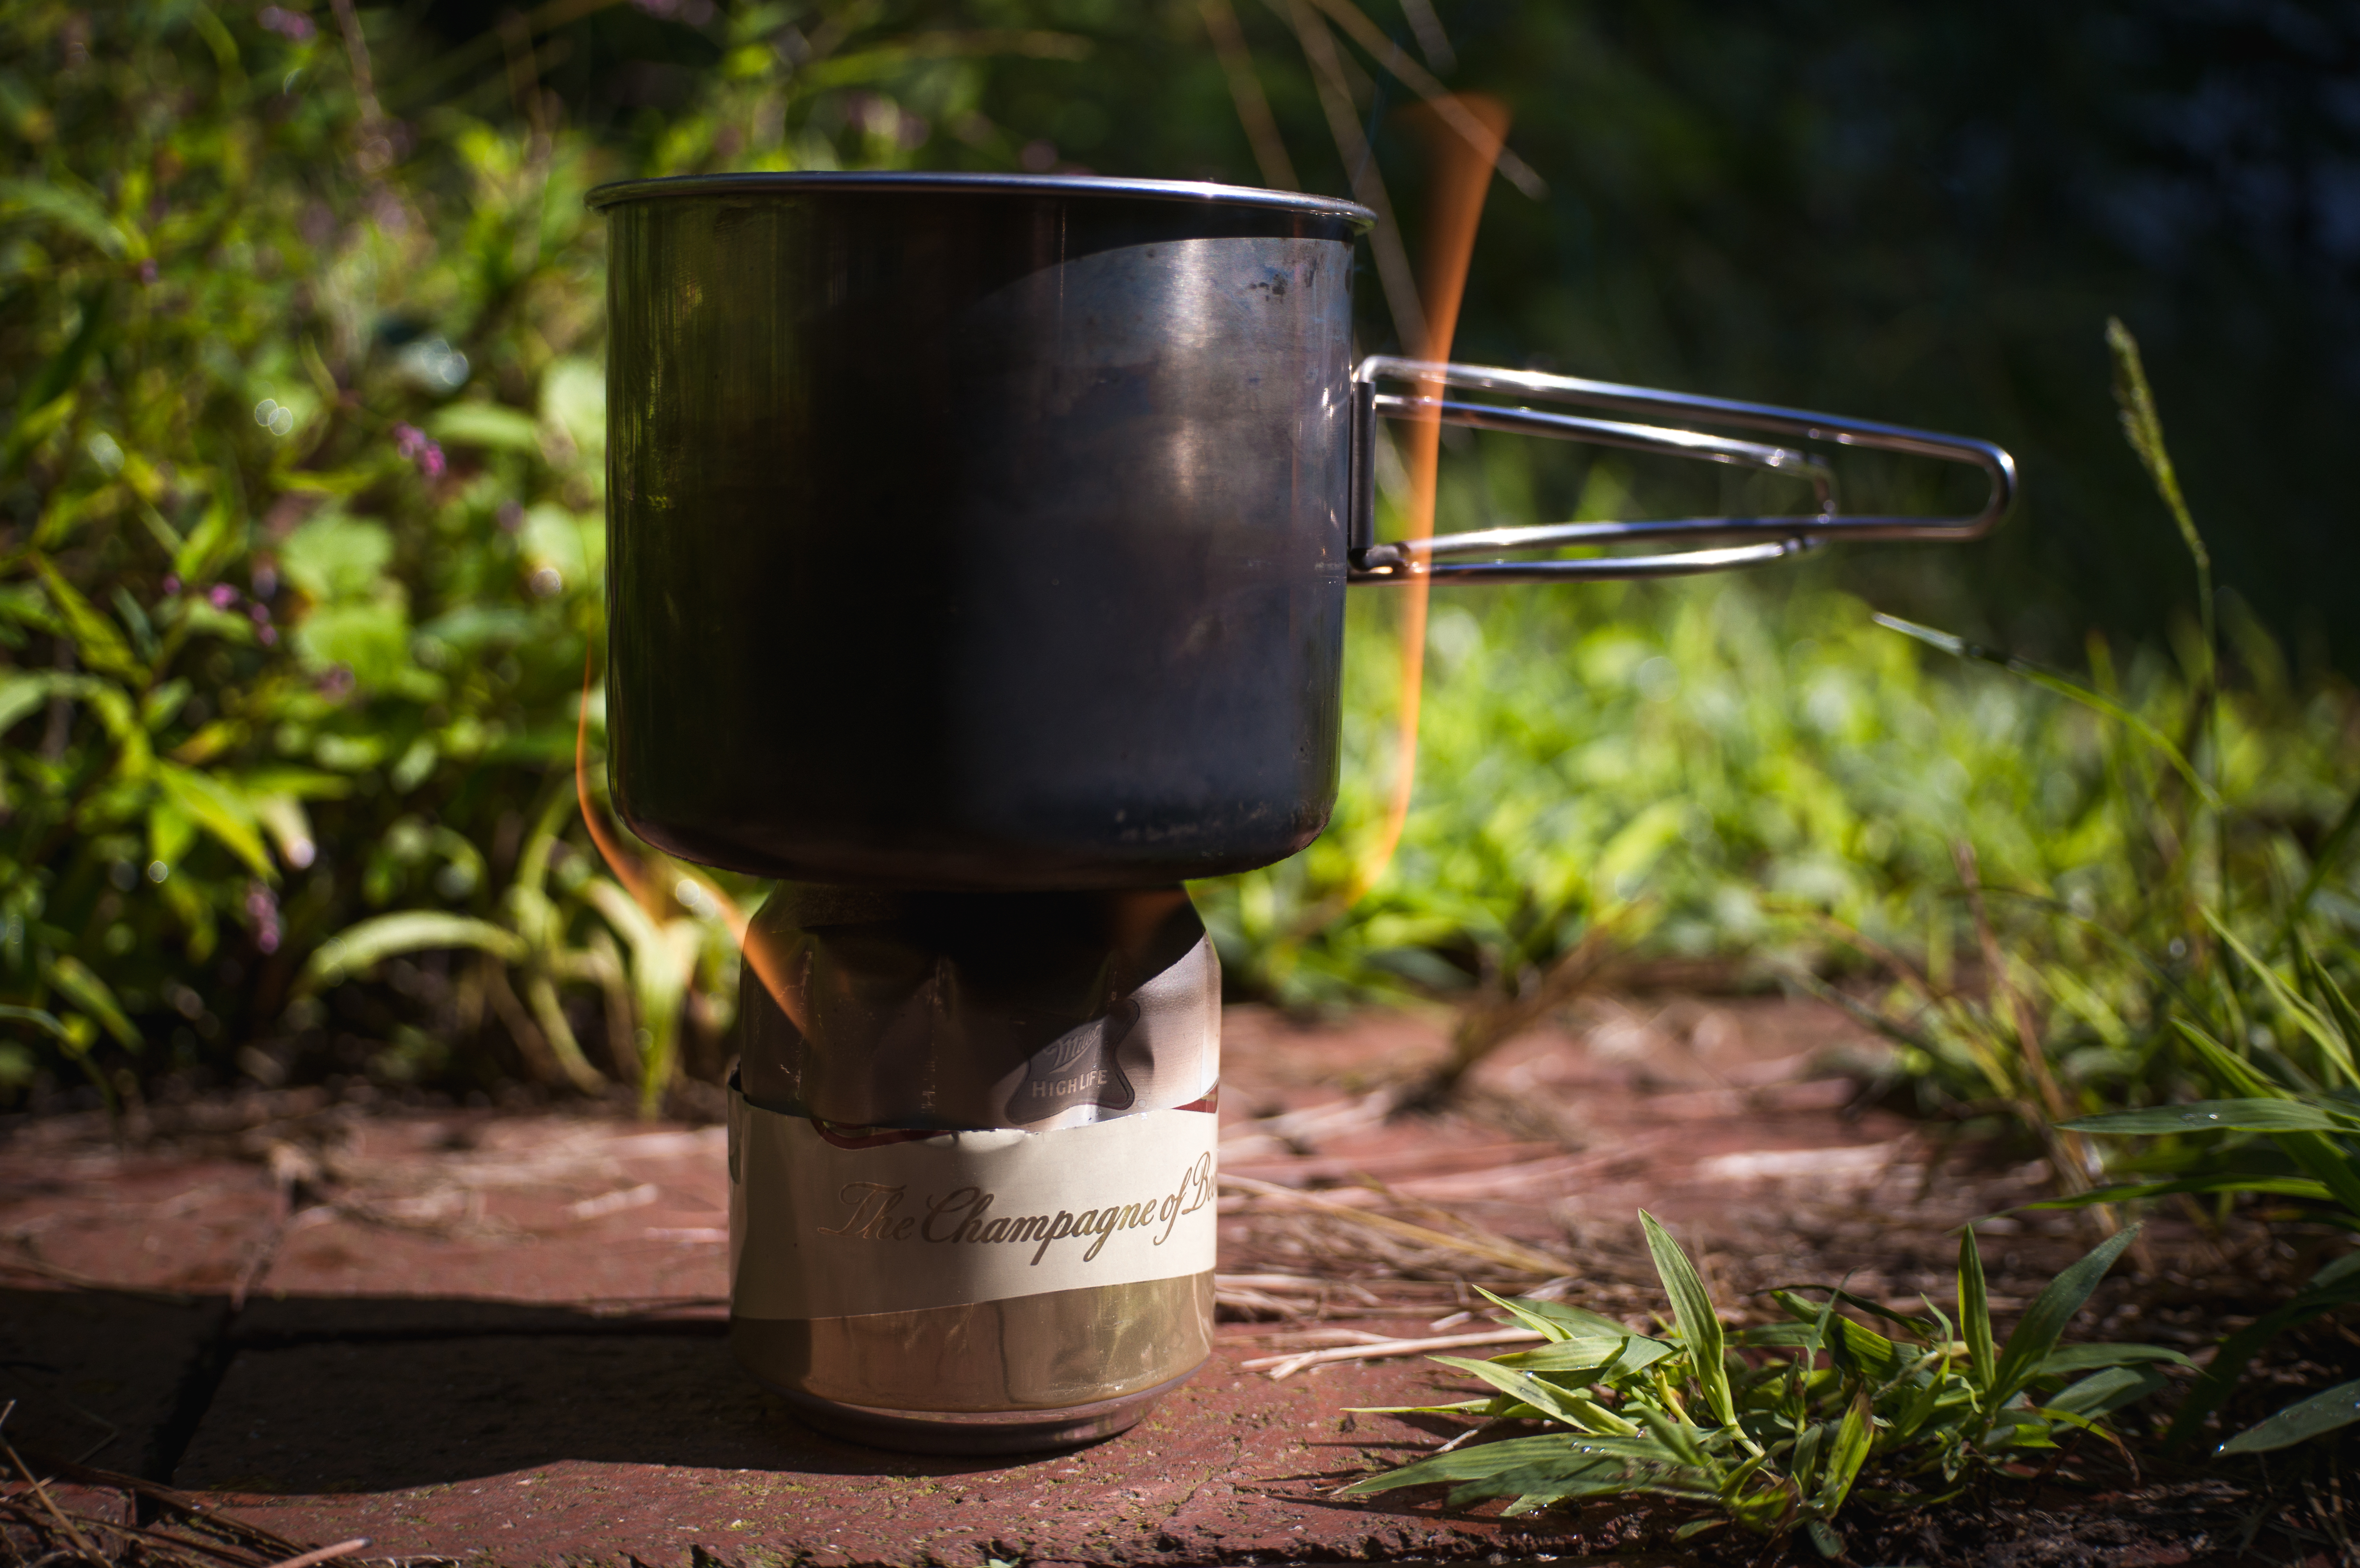 Completed camp stove